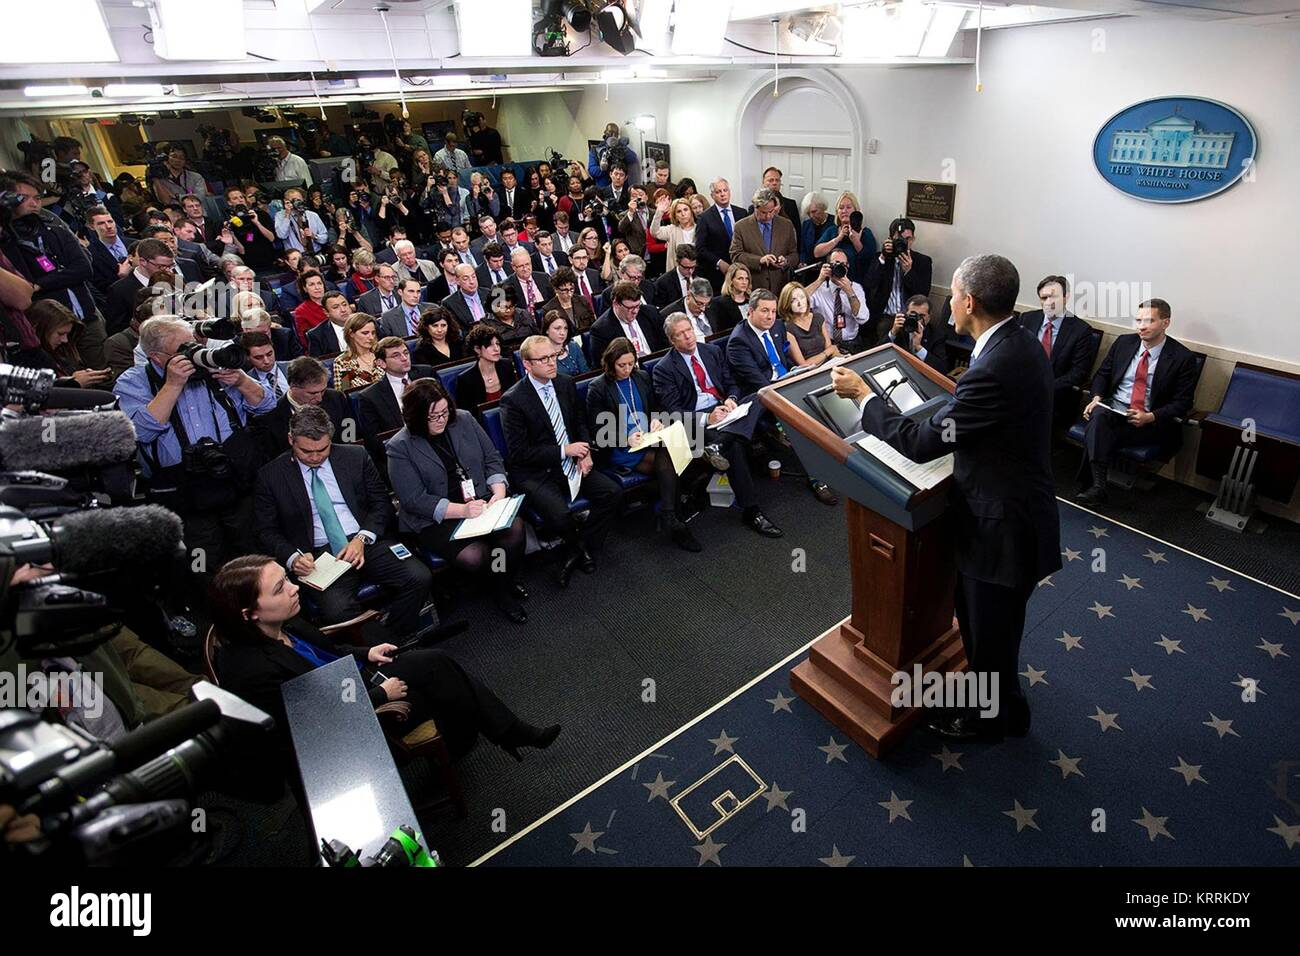 U.S. President Barack Obama holds his final press conference at the White House Press Briefing Room January 17, - Stock Image